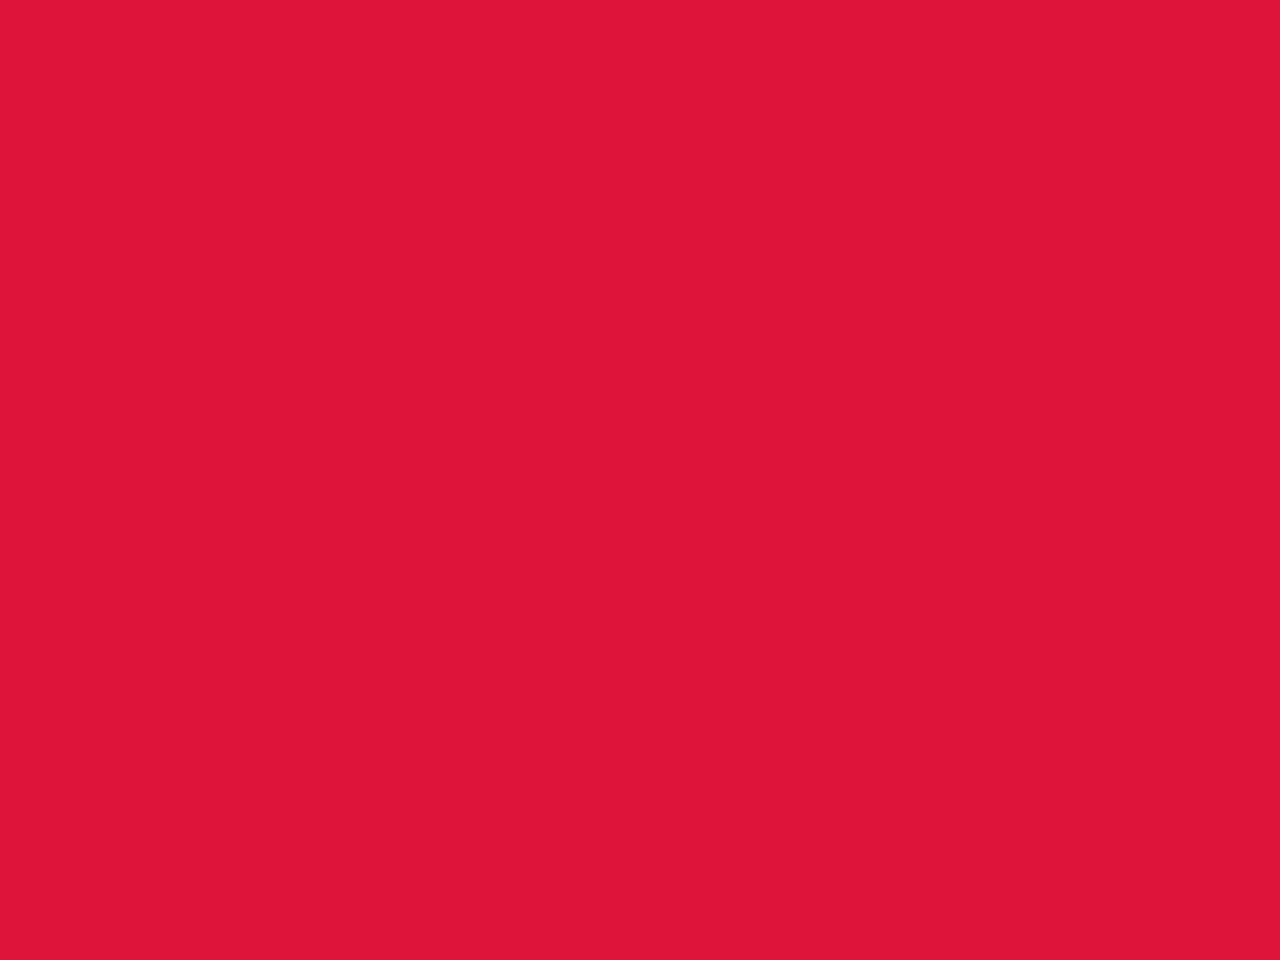 1280x960 Crimson Solid Color Background